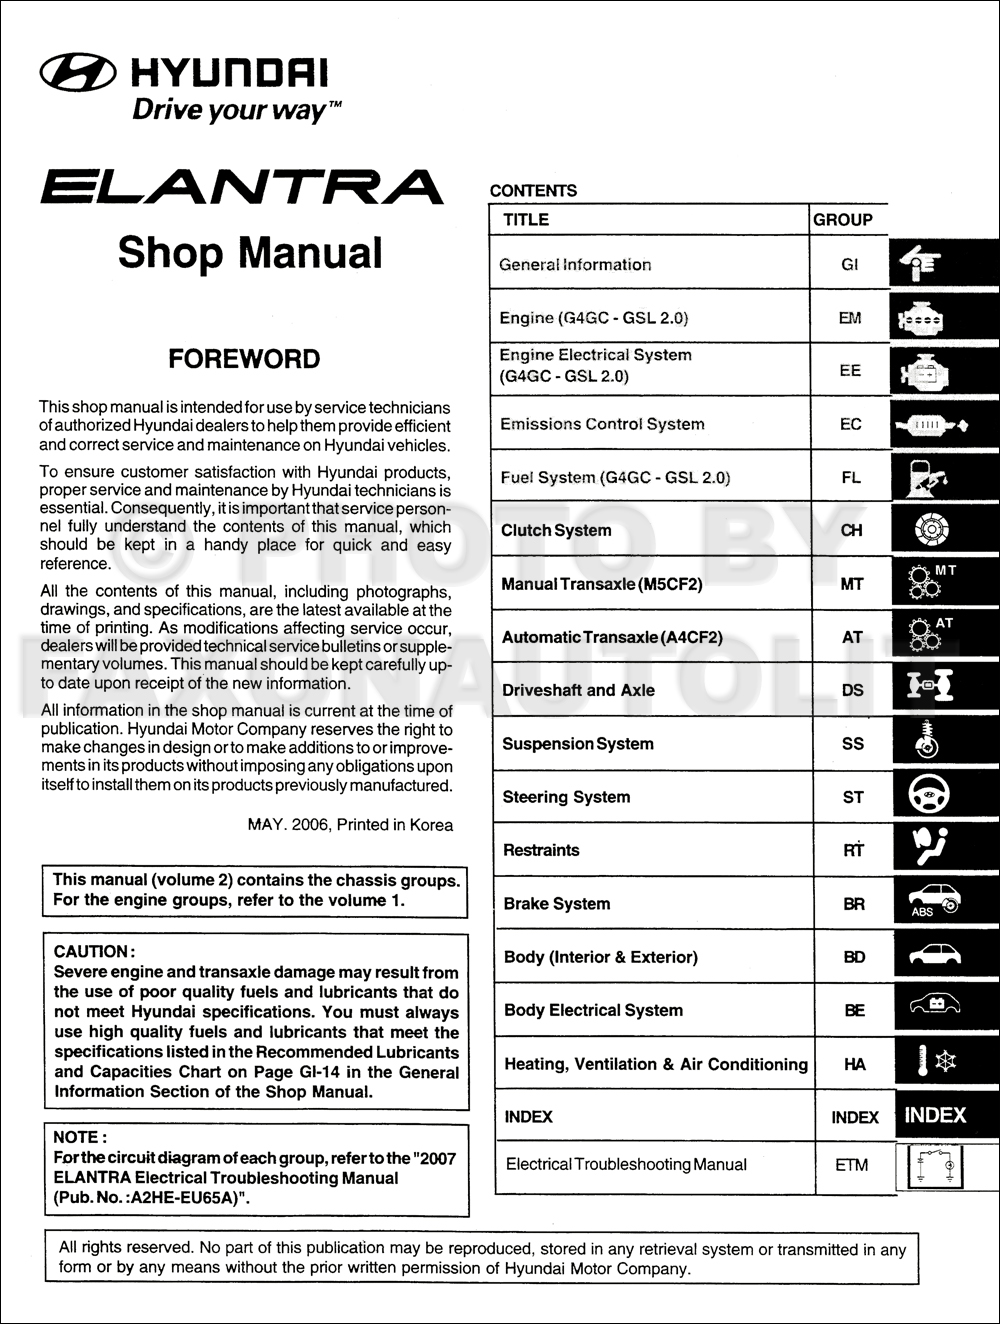 2007 Hyundai Elantra Repair Shop Manual 2 Volume Set